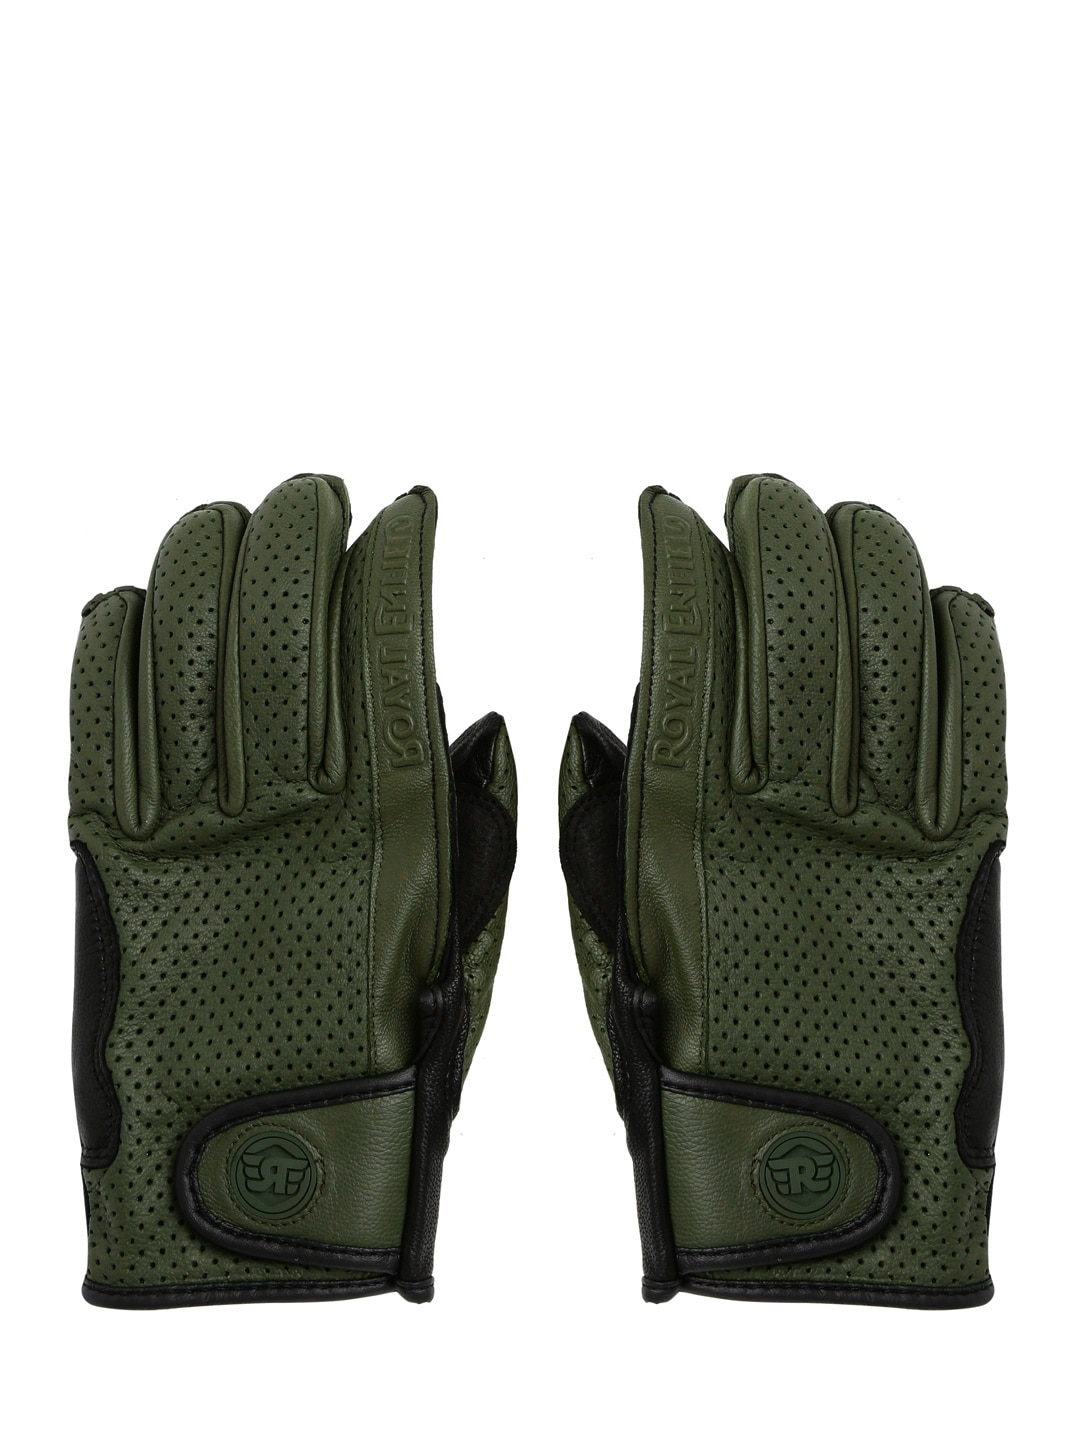 Driving gloves online shopping india - Driving Gloves Online Shopping India 47